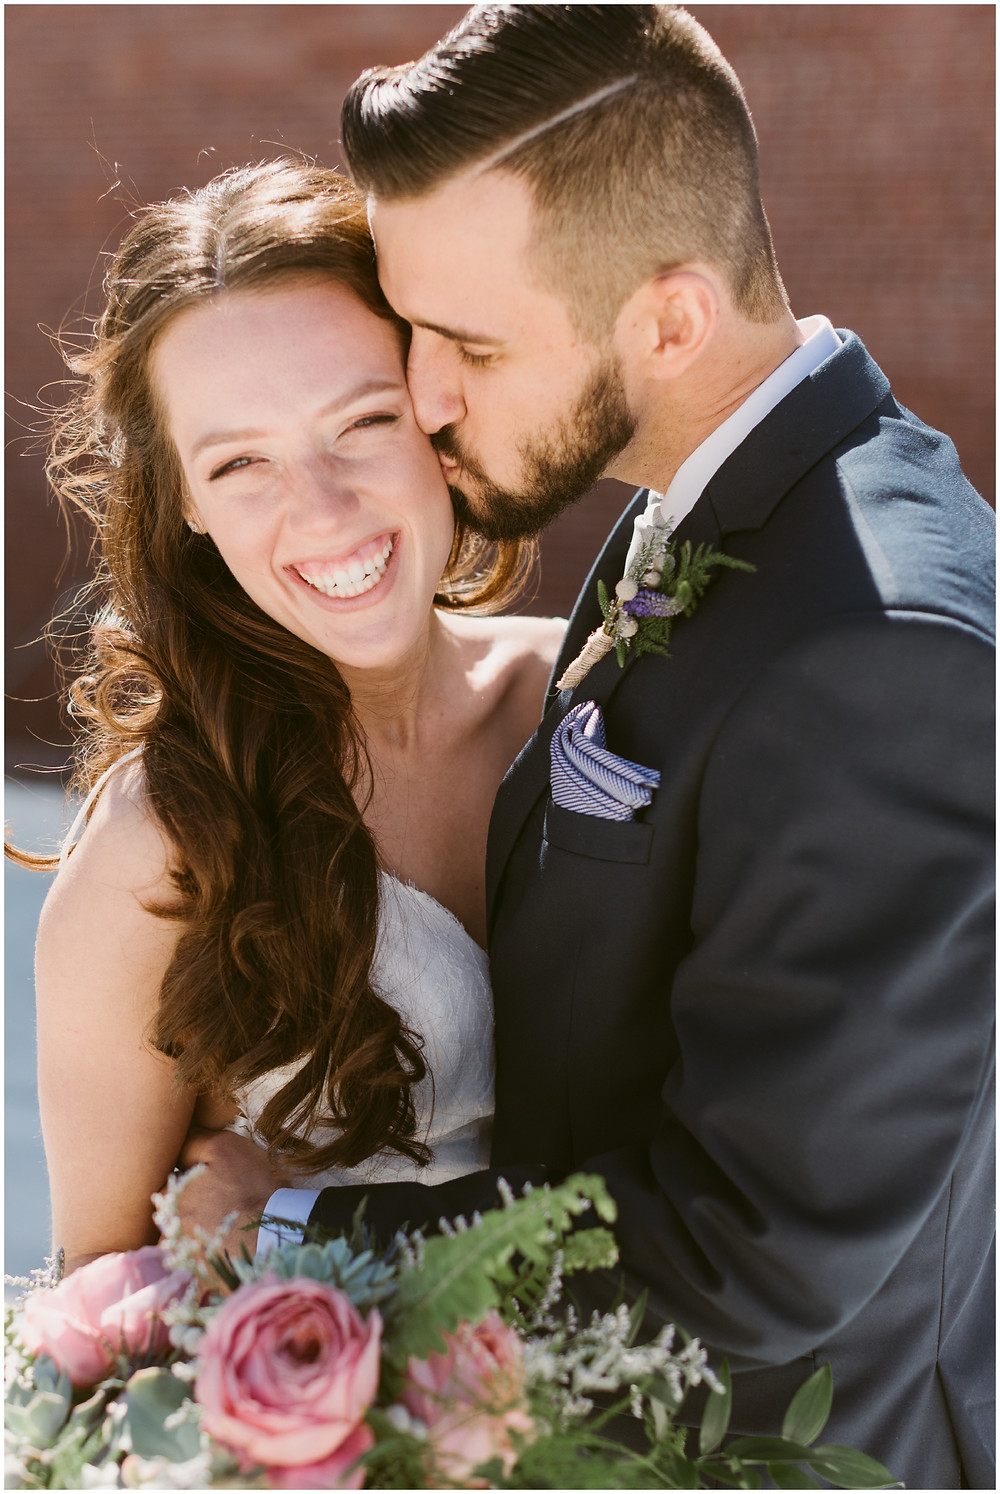 Urban bride and groom portraits on the rooftop of the Takk House in Troy, NY by Mountainaire Gatherings